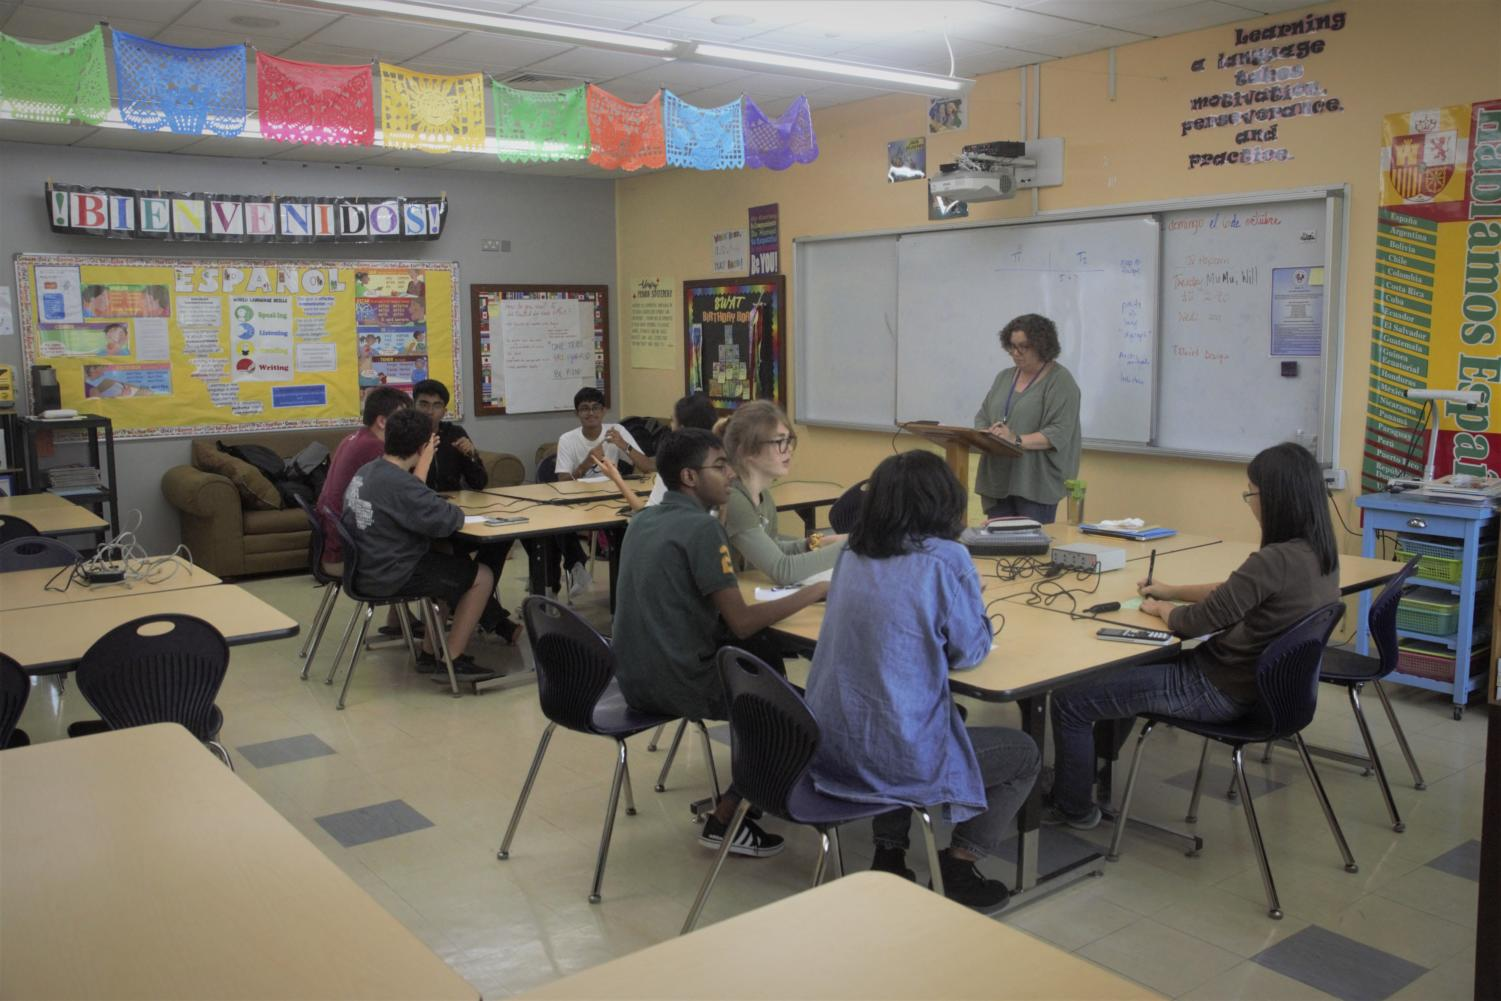 The ASD JV Academics Games team practices most days after school, sharpening their question-answering and buzzer-buzzing skills in a spirit of healthy academic competition.